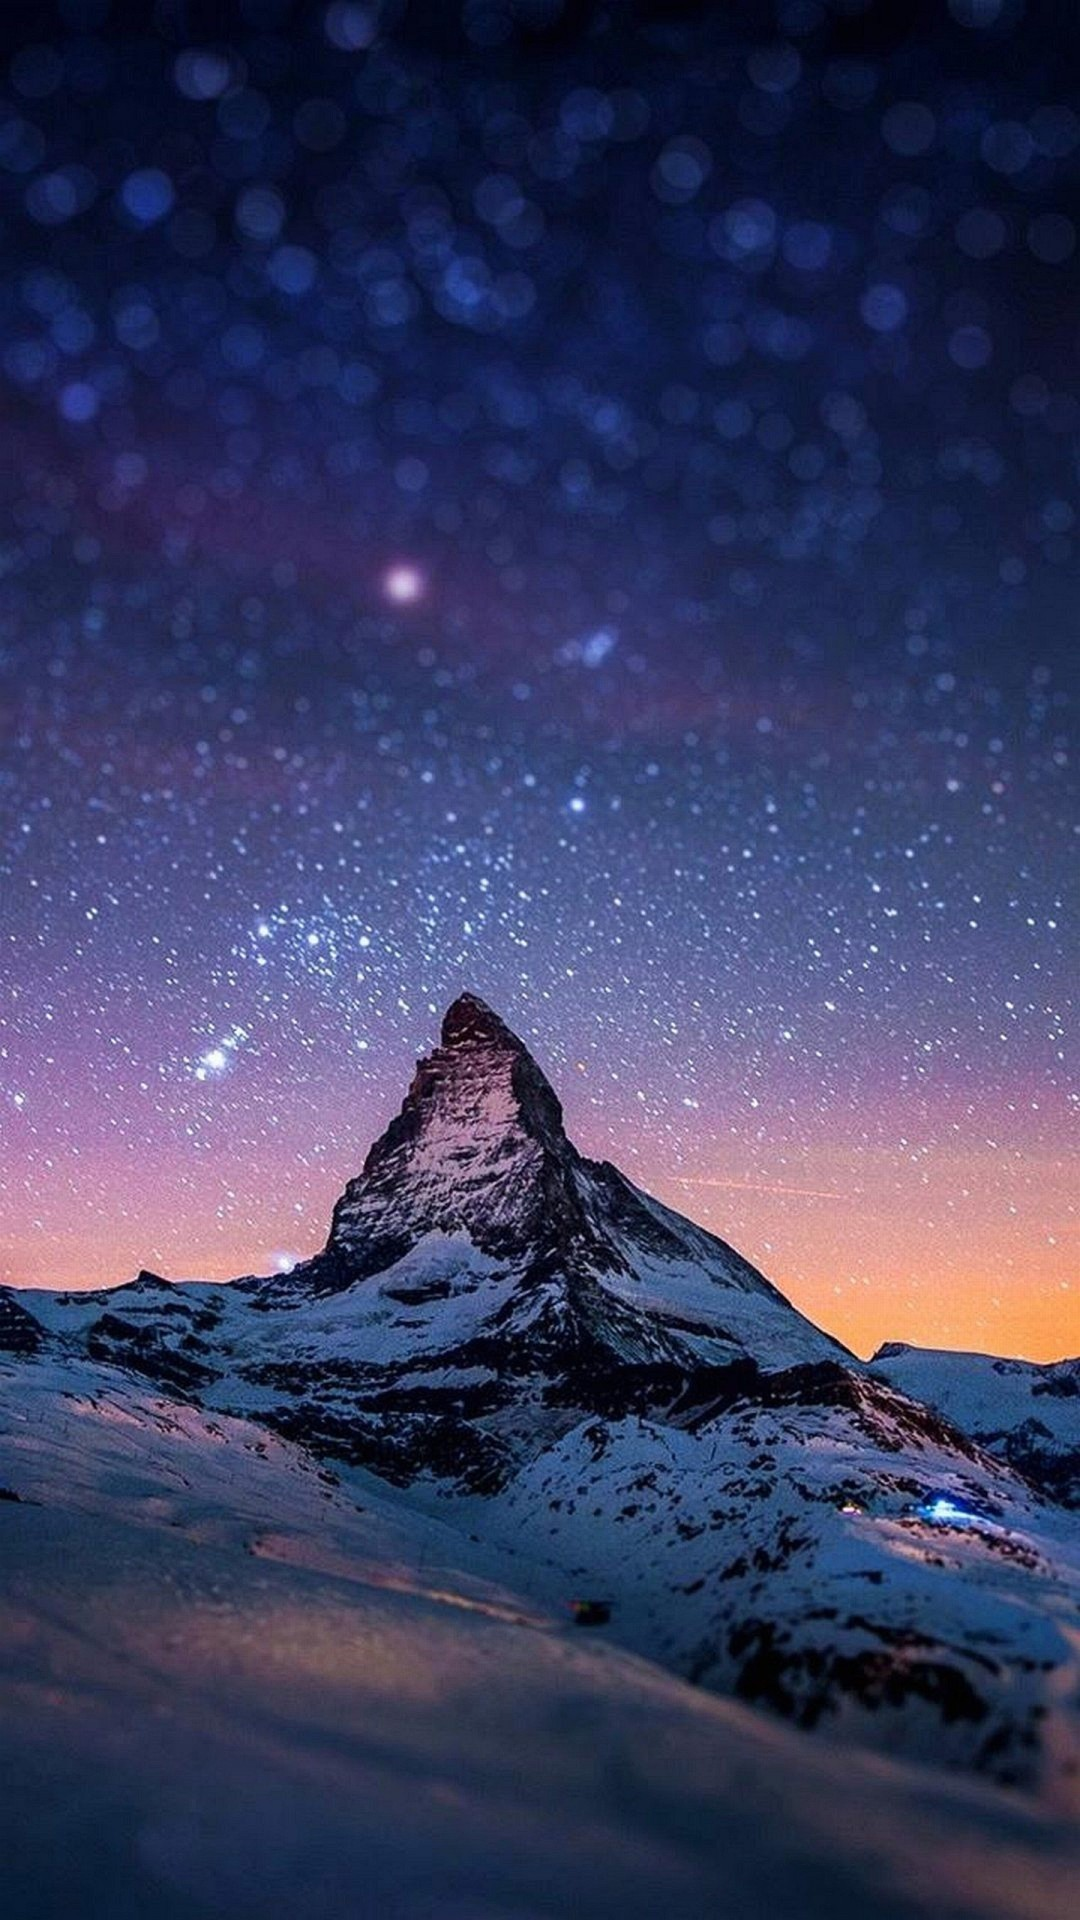 Night And Stars Hd Wallpapers For Iphone 6s Plus